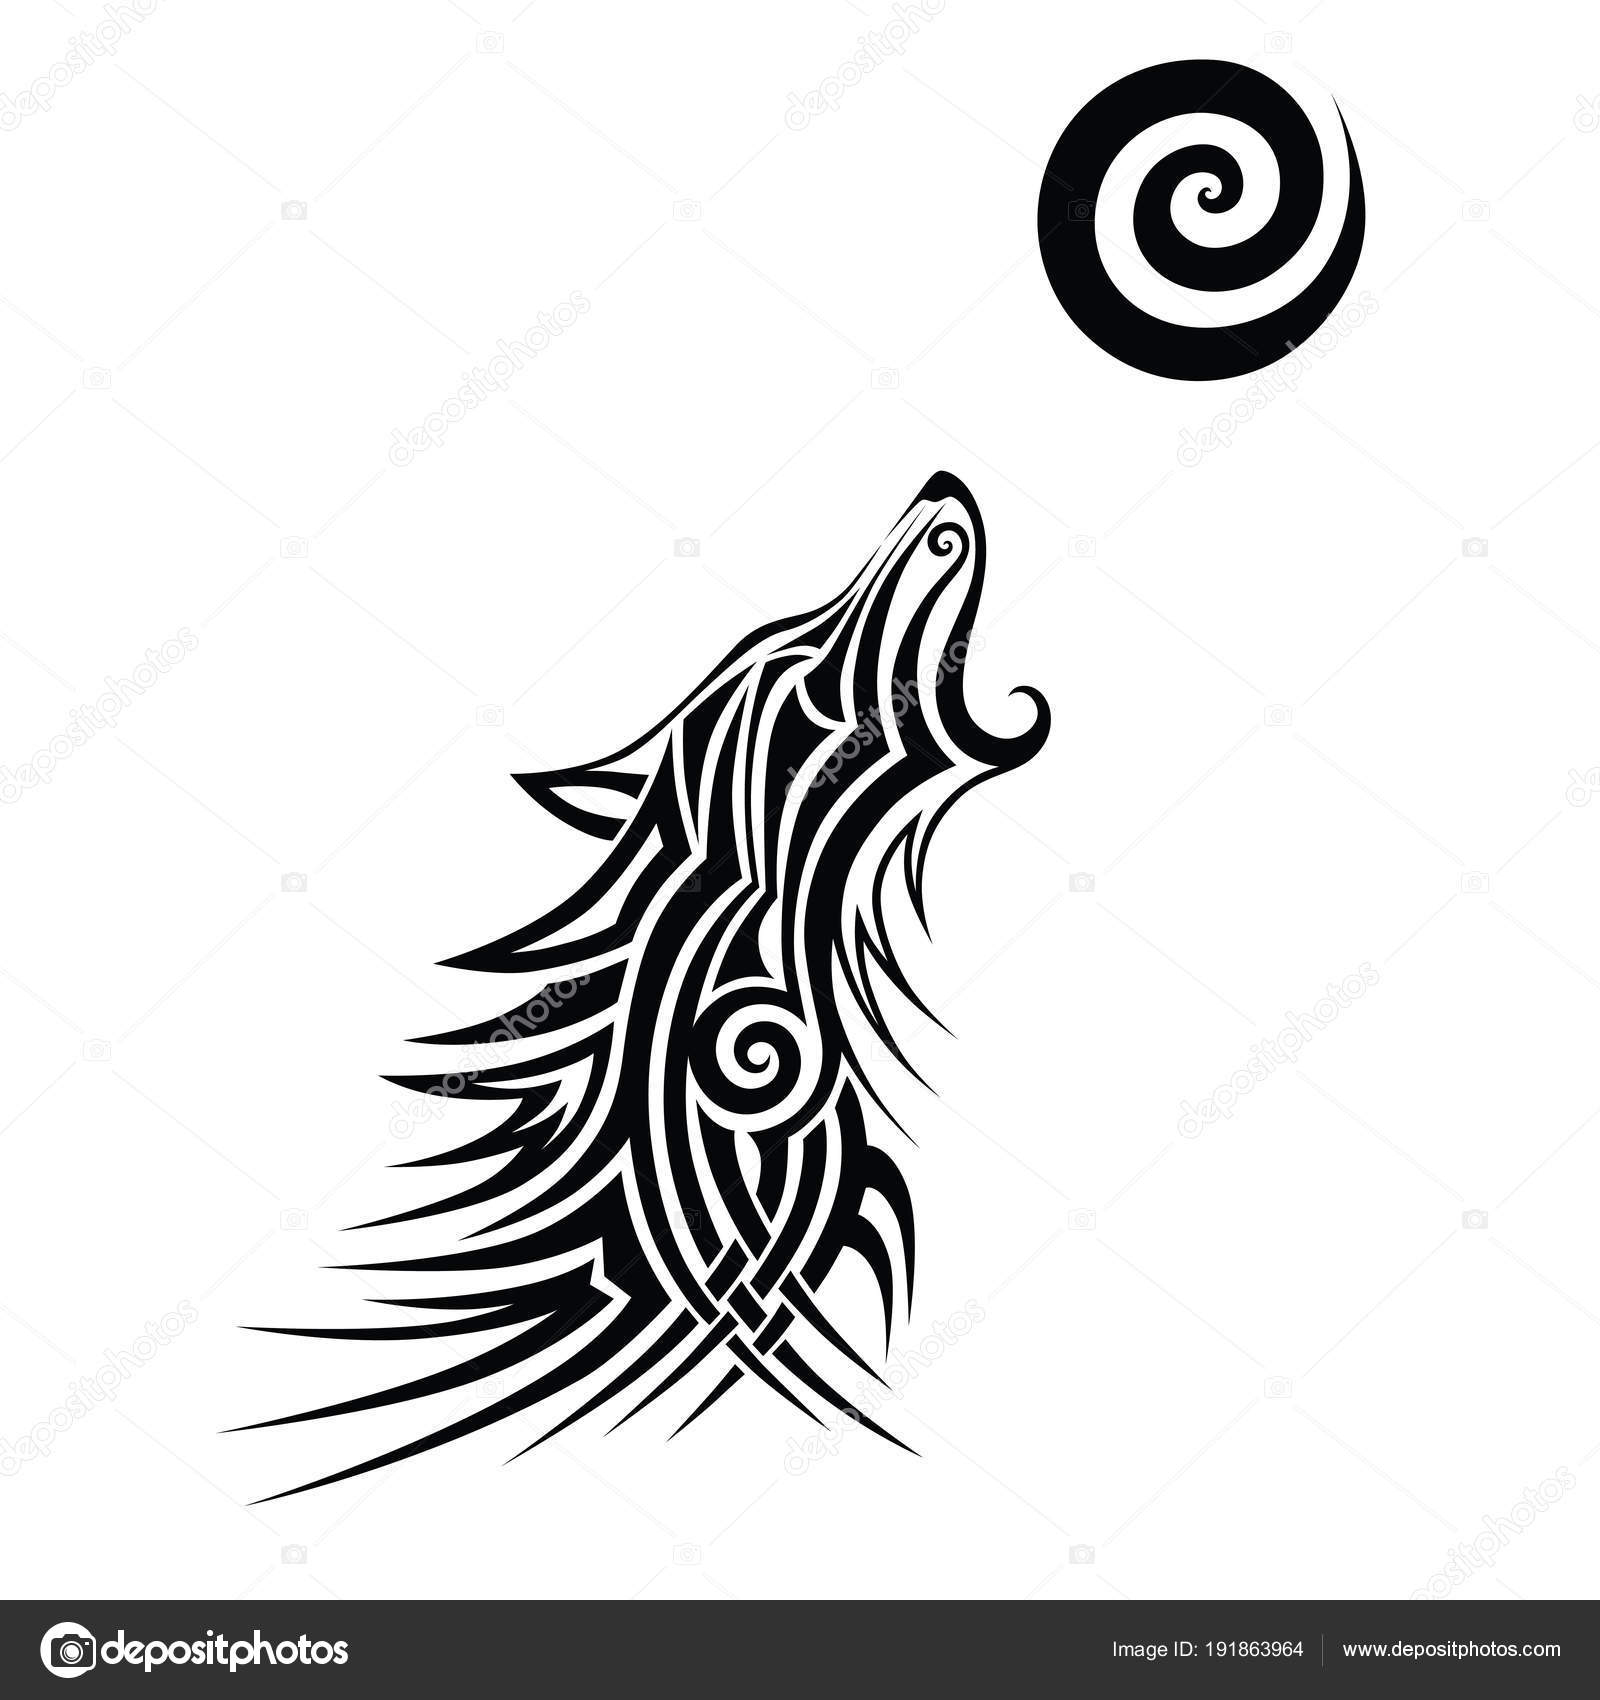 Loup Tribal Tattoo Design Noir Vector Art Idée Sketch Isolé